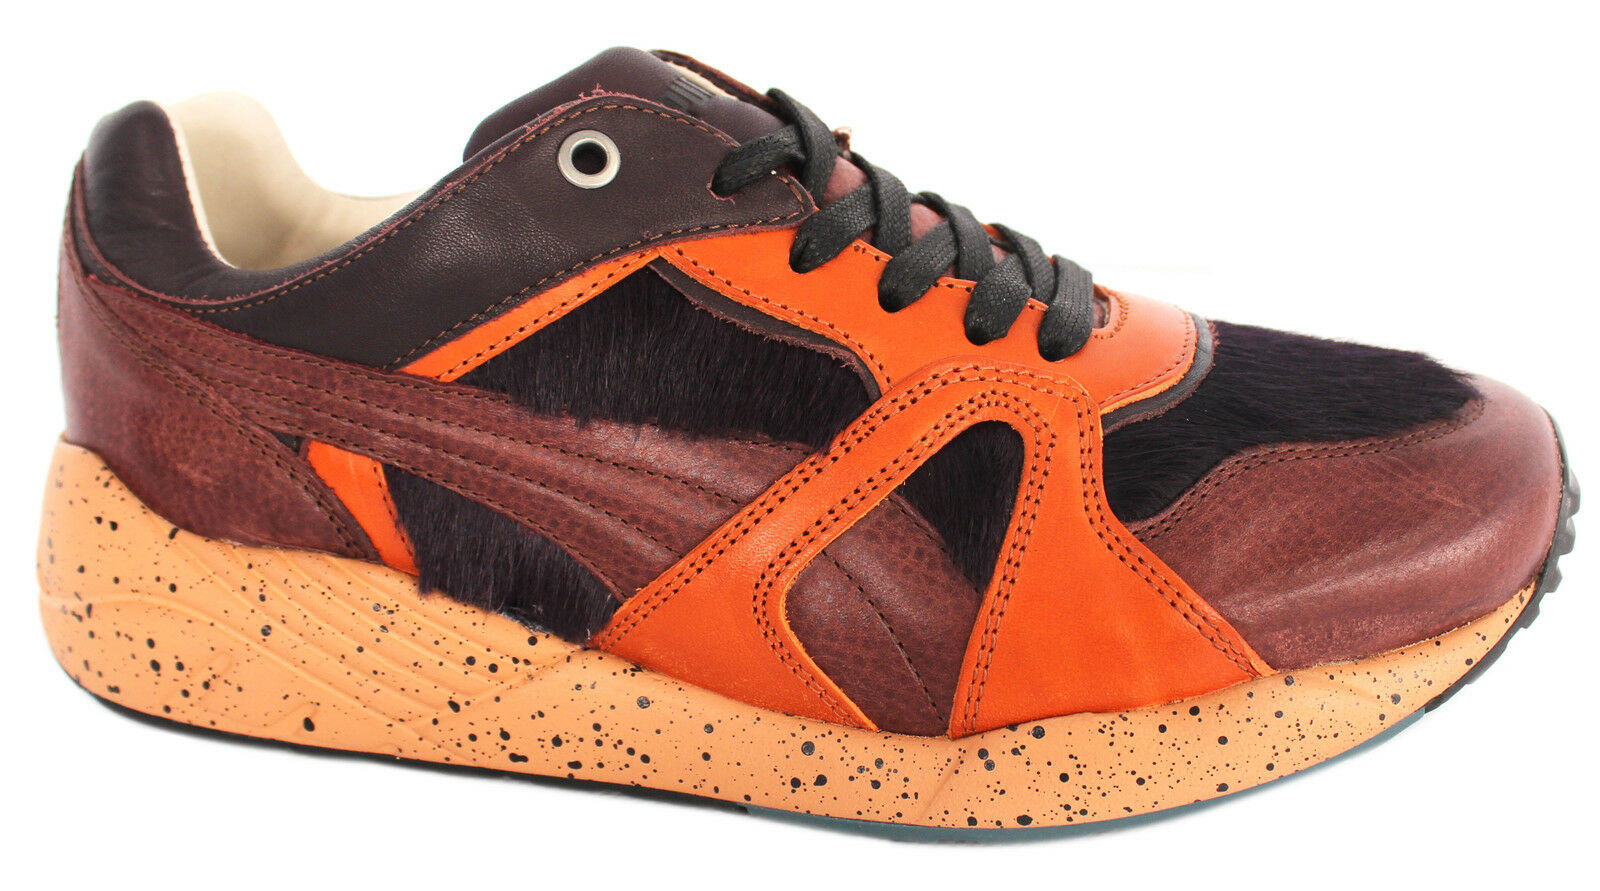 Puma Trinomic XS500 X Miitaly Mens Trainers Brown Made In Italy 357262 02 M10